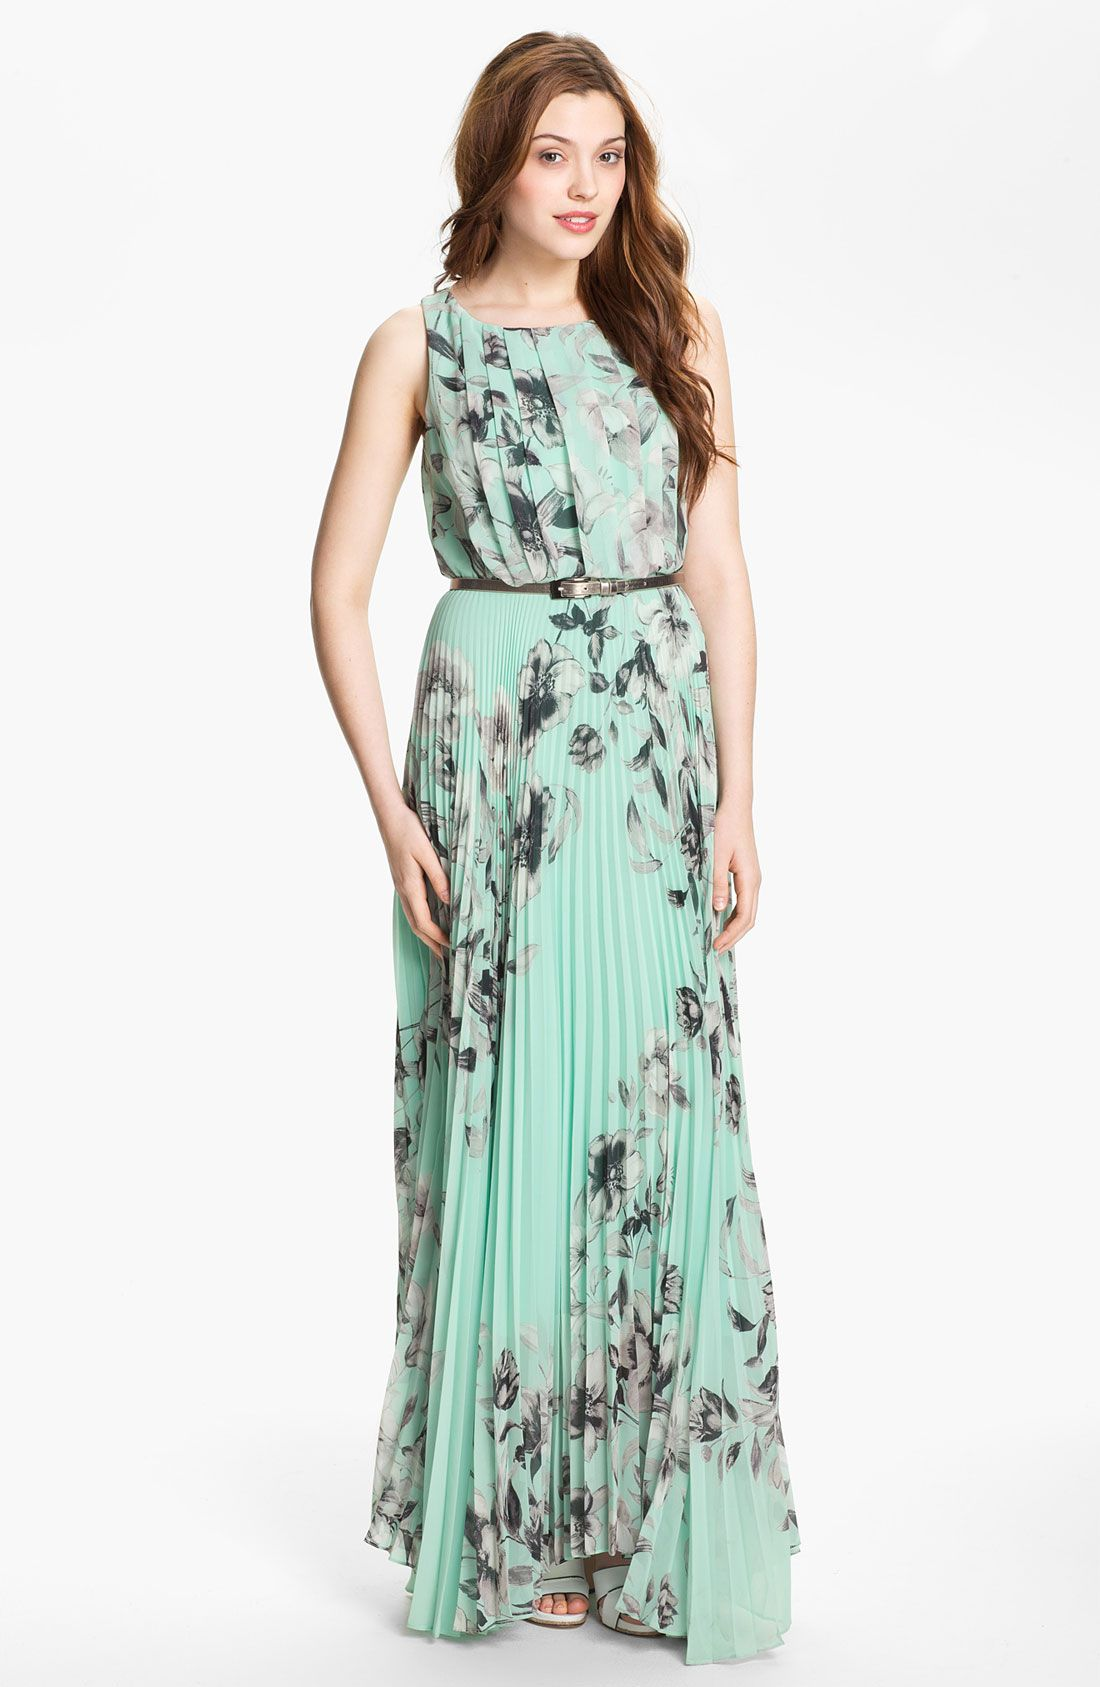 Womens Summer Maxi Dresses Photo Album - Reikian